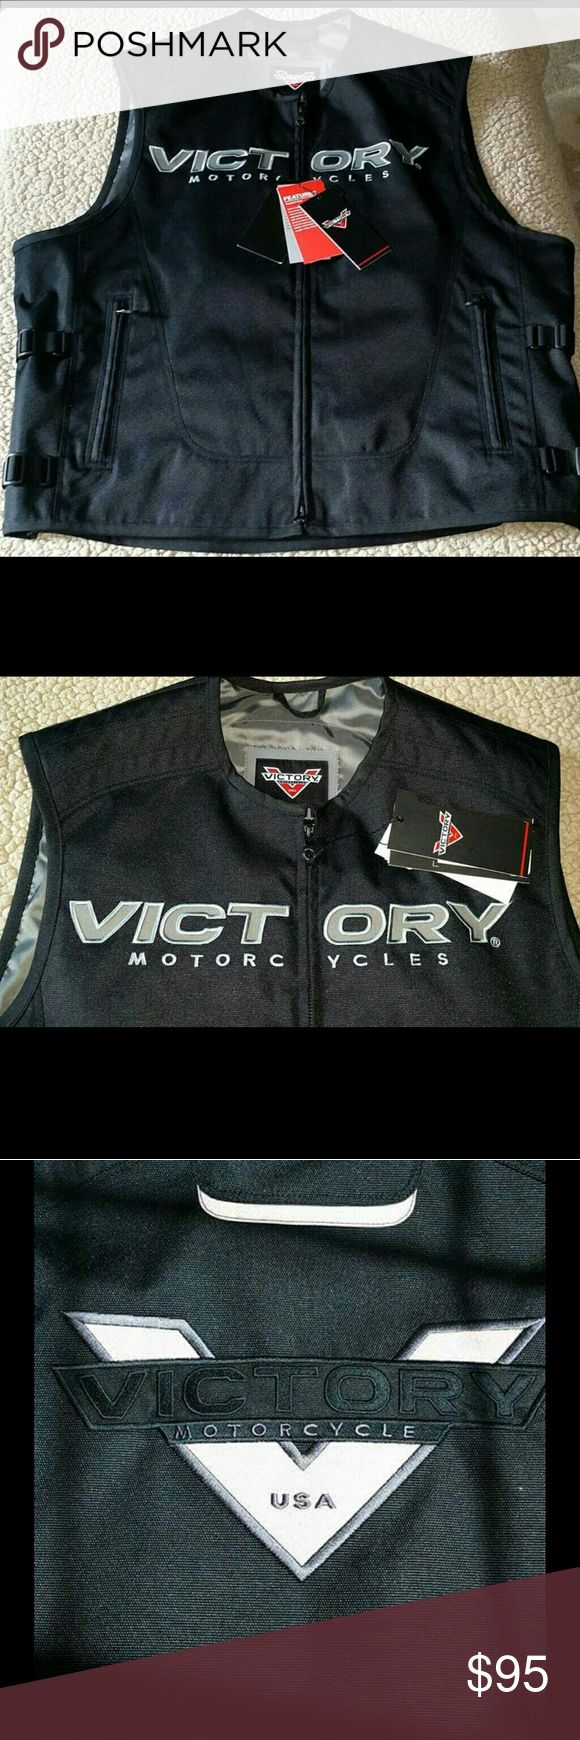 Motorcycle vest New Victory tactical vest XL Victory Other